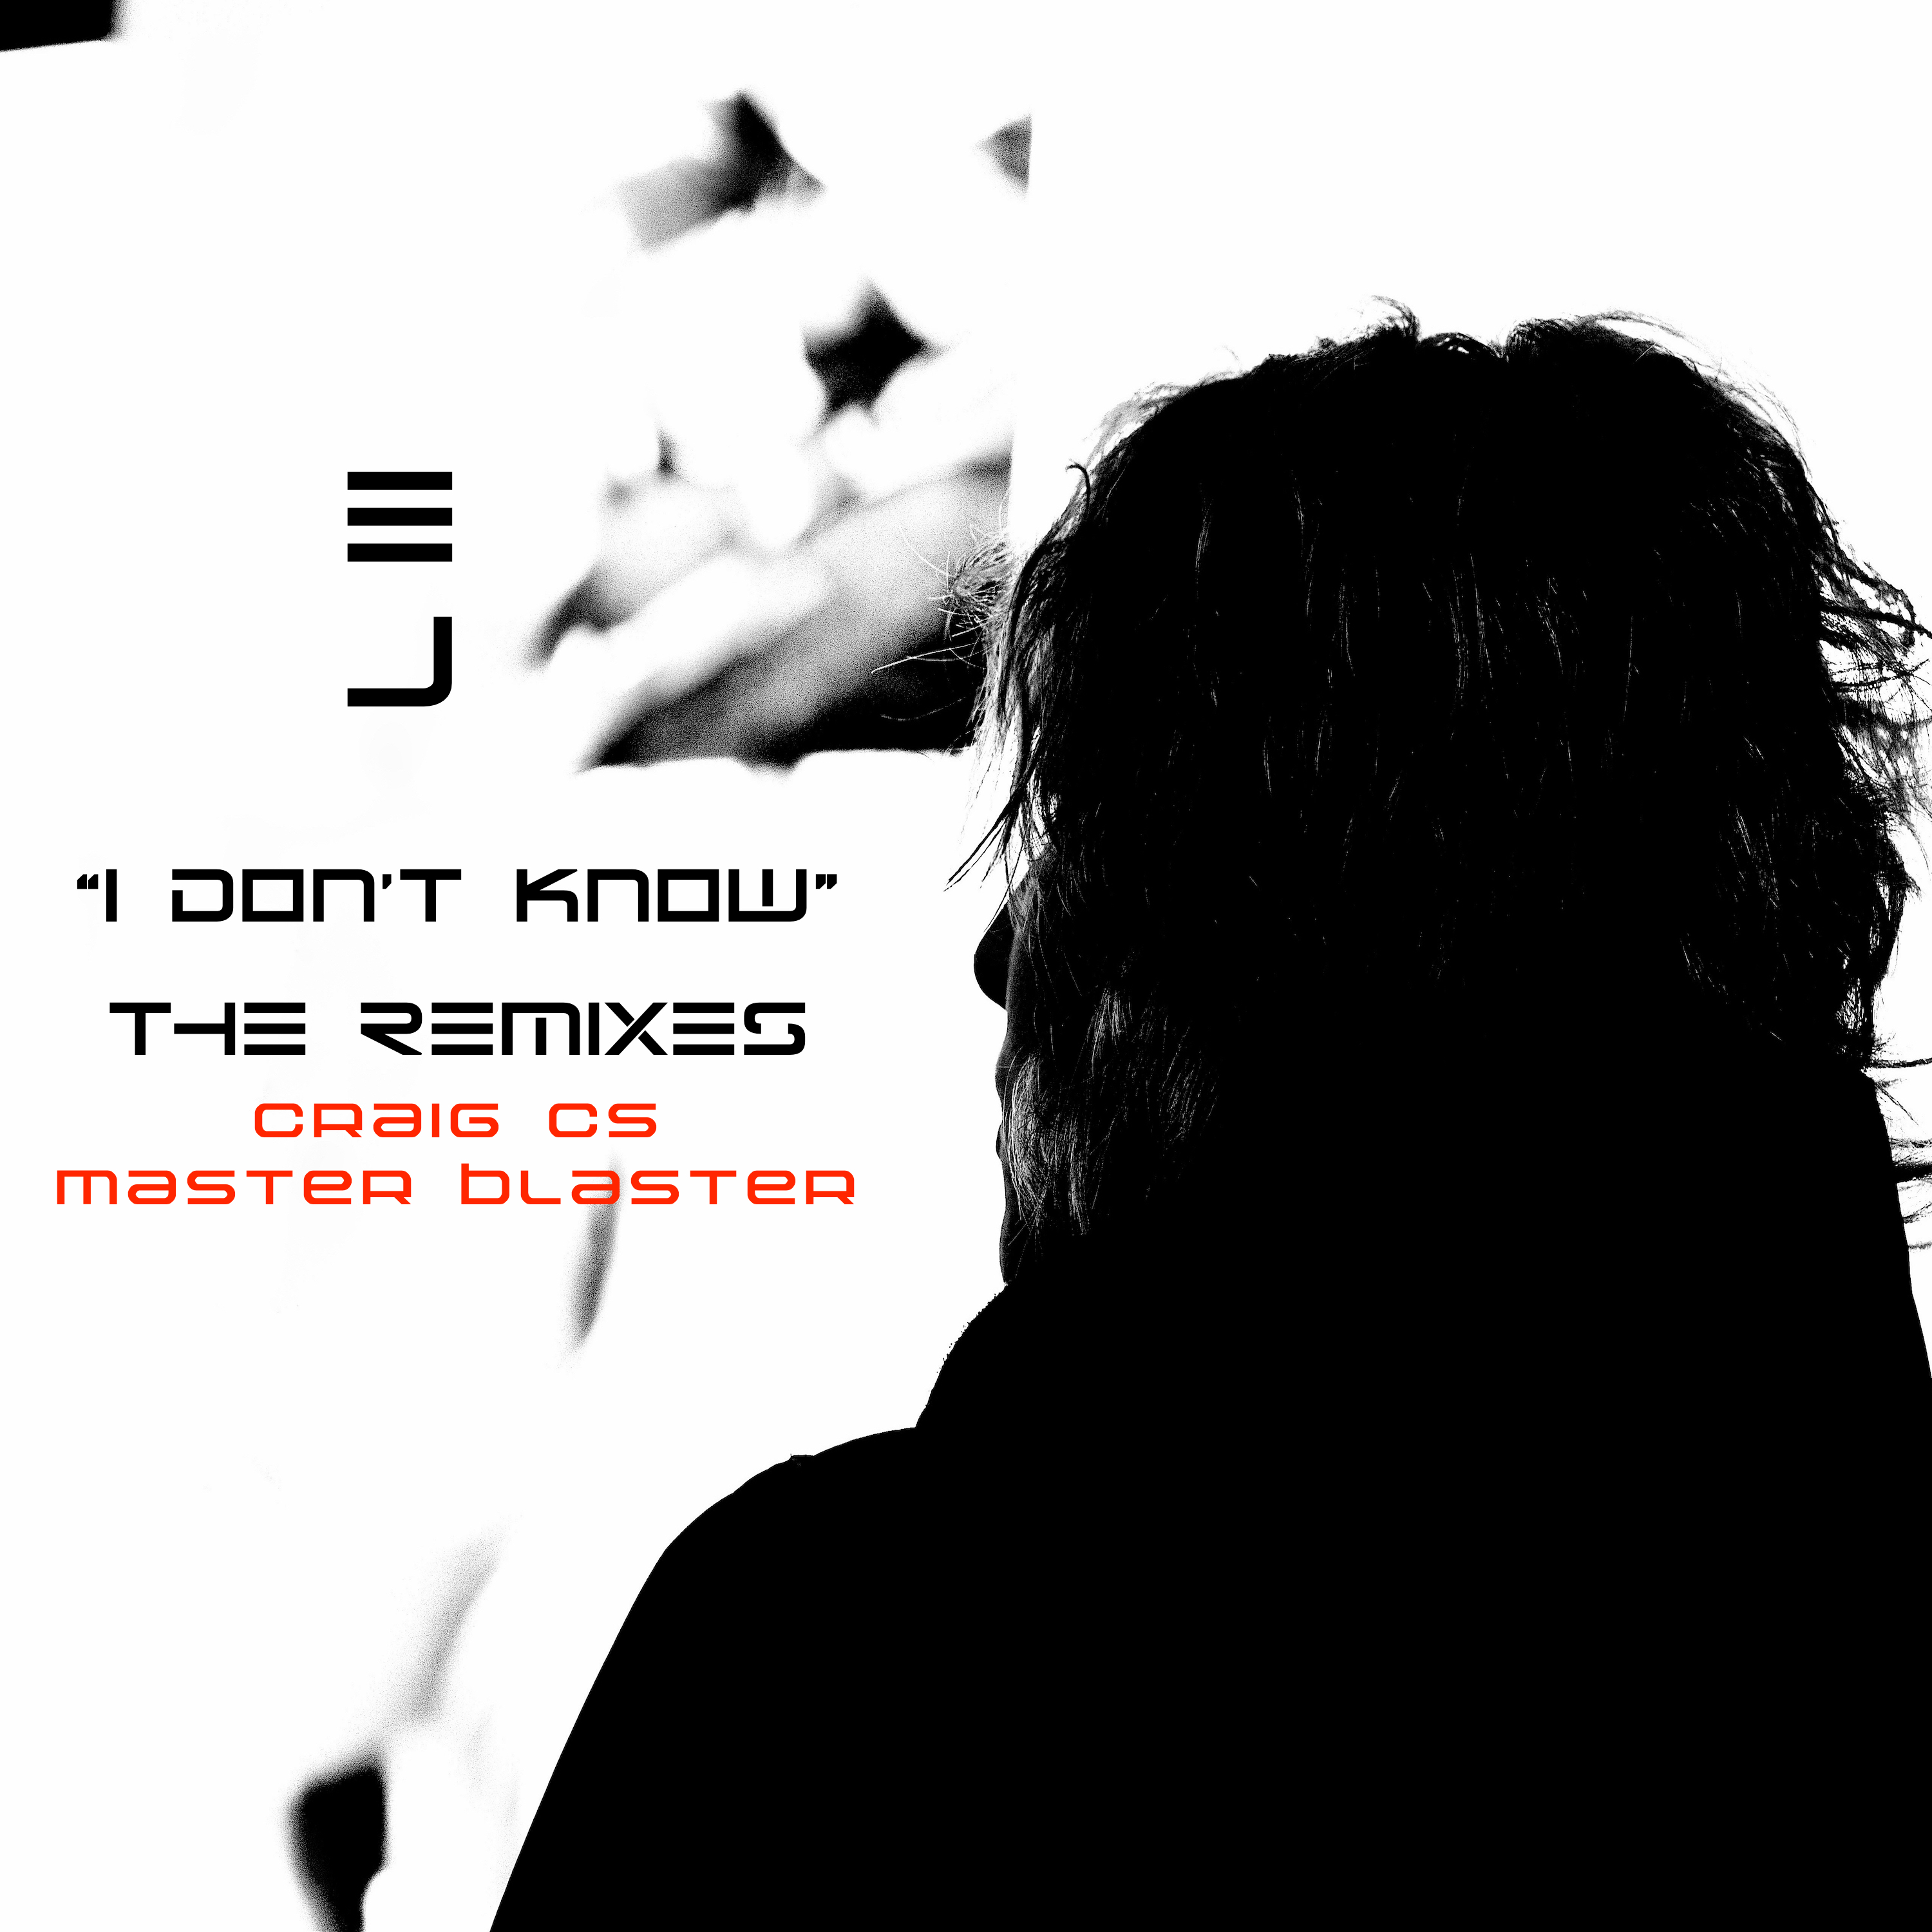 E.J. – I Don't Know (Craig Cs Master Blaster) (CLIP)